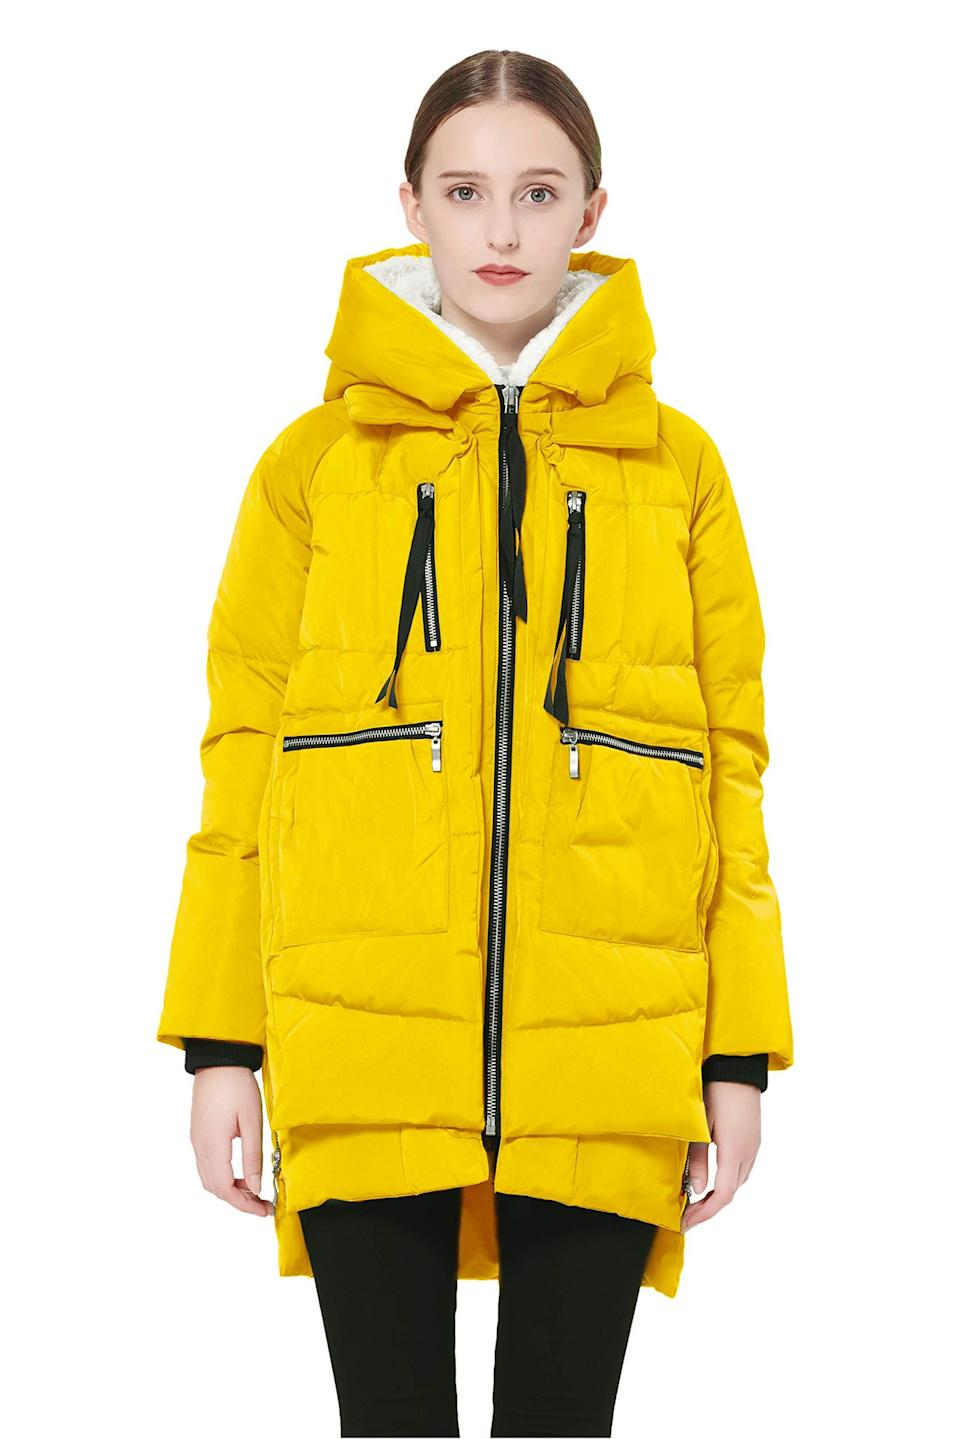 """<h2>37% off Orolay Thickened Down Jacket<br></h2><br>It wouldn't be Prime Day without a discount on the Amazon-famous Orolay coat — which is now available in a host of covetable colorways, including this sunny egg-yolk yellow.<br><br><em>Shop Orolay at <strong><a href=""""https://amzn.to/2Sg4yrm"""" rel=""""nofollow noopener"""" target=""""_blank"""" data-ylk=""""slk:Amazon"""" class=""""link rapid-noclick-resp"""">Amazon</a></strong></em><br><br><strong>Orolay</strong> Thickened Down Jacket, $, available at <a href=""""https://amzn.to/3vMtUL9"""" rel=""""nofollow noopener"""" target=""""_blank"""" data-ylk=""""slk:Amazon"""" class=""""link rapid-noclick-resp"""">Amazon</a>"""